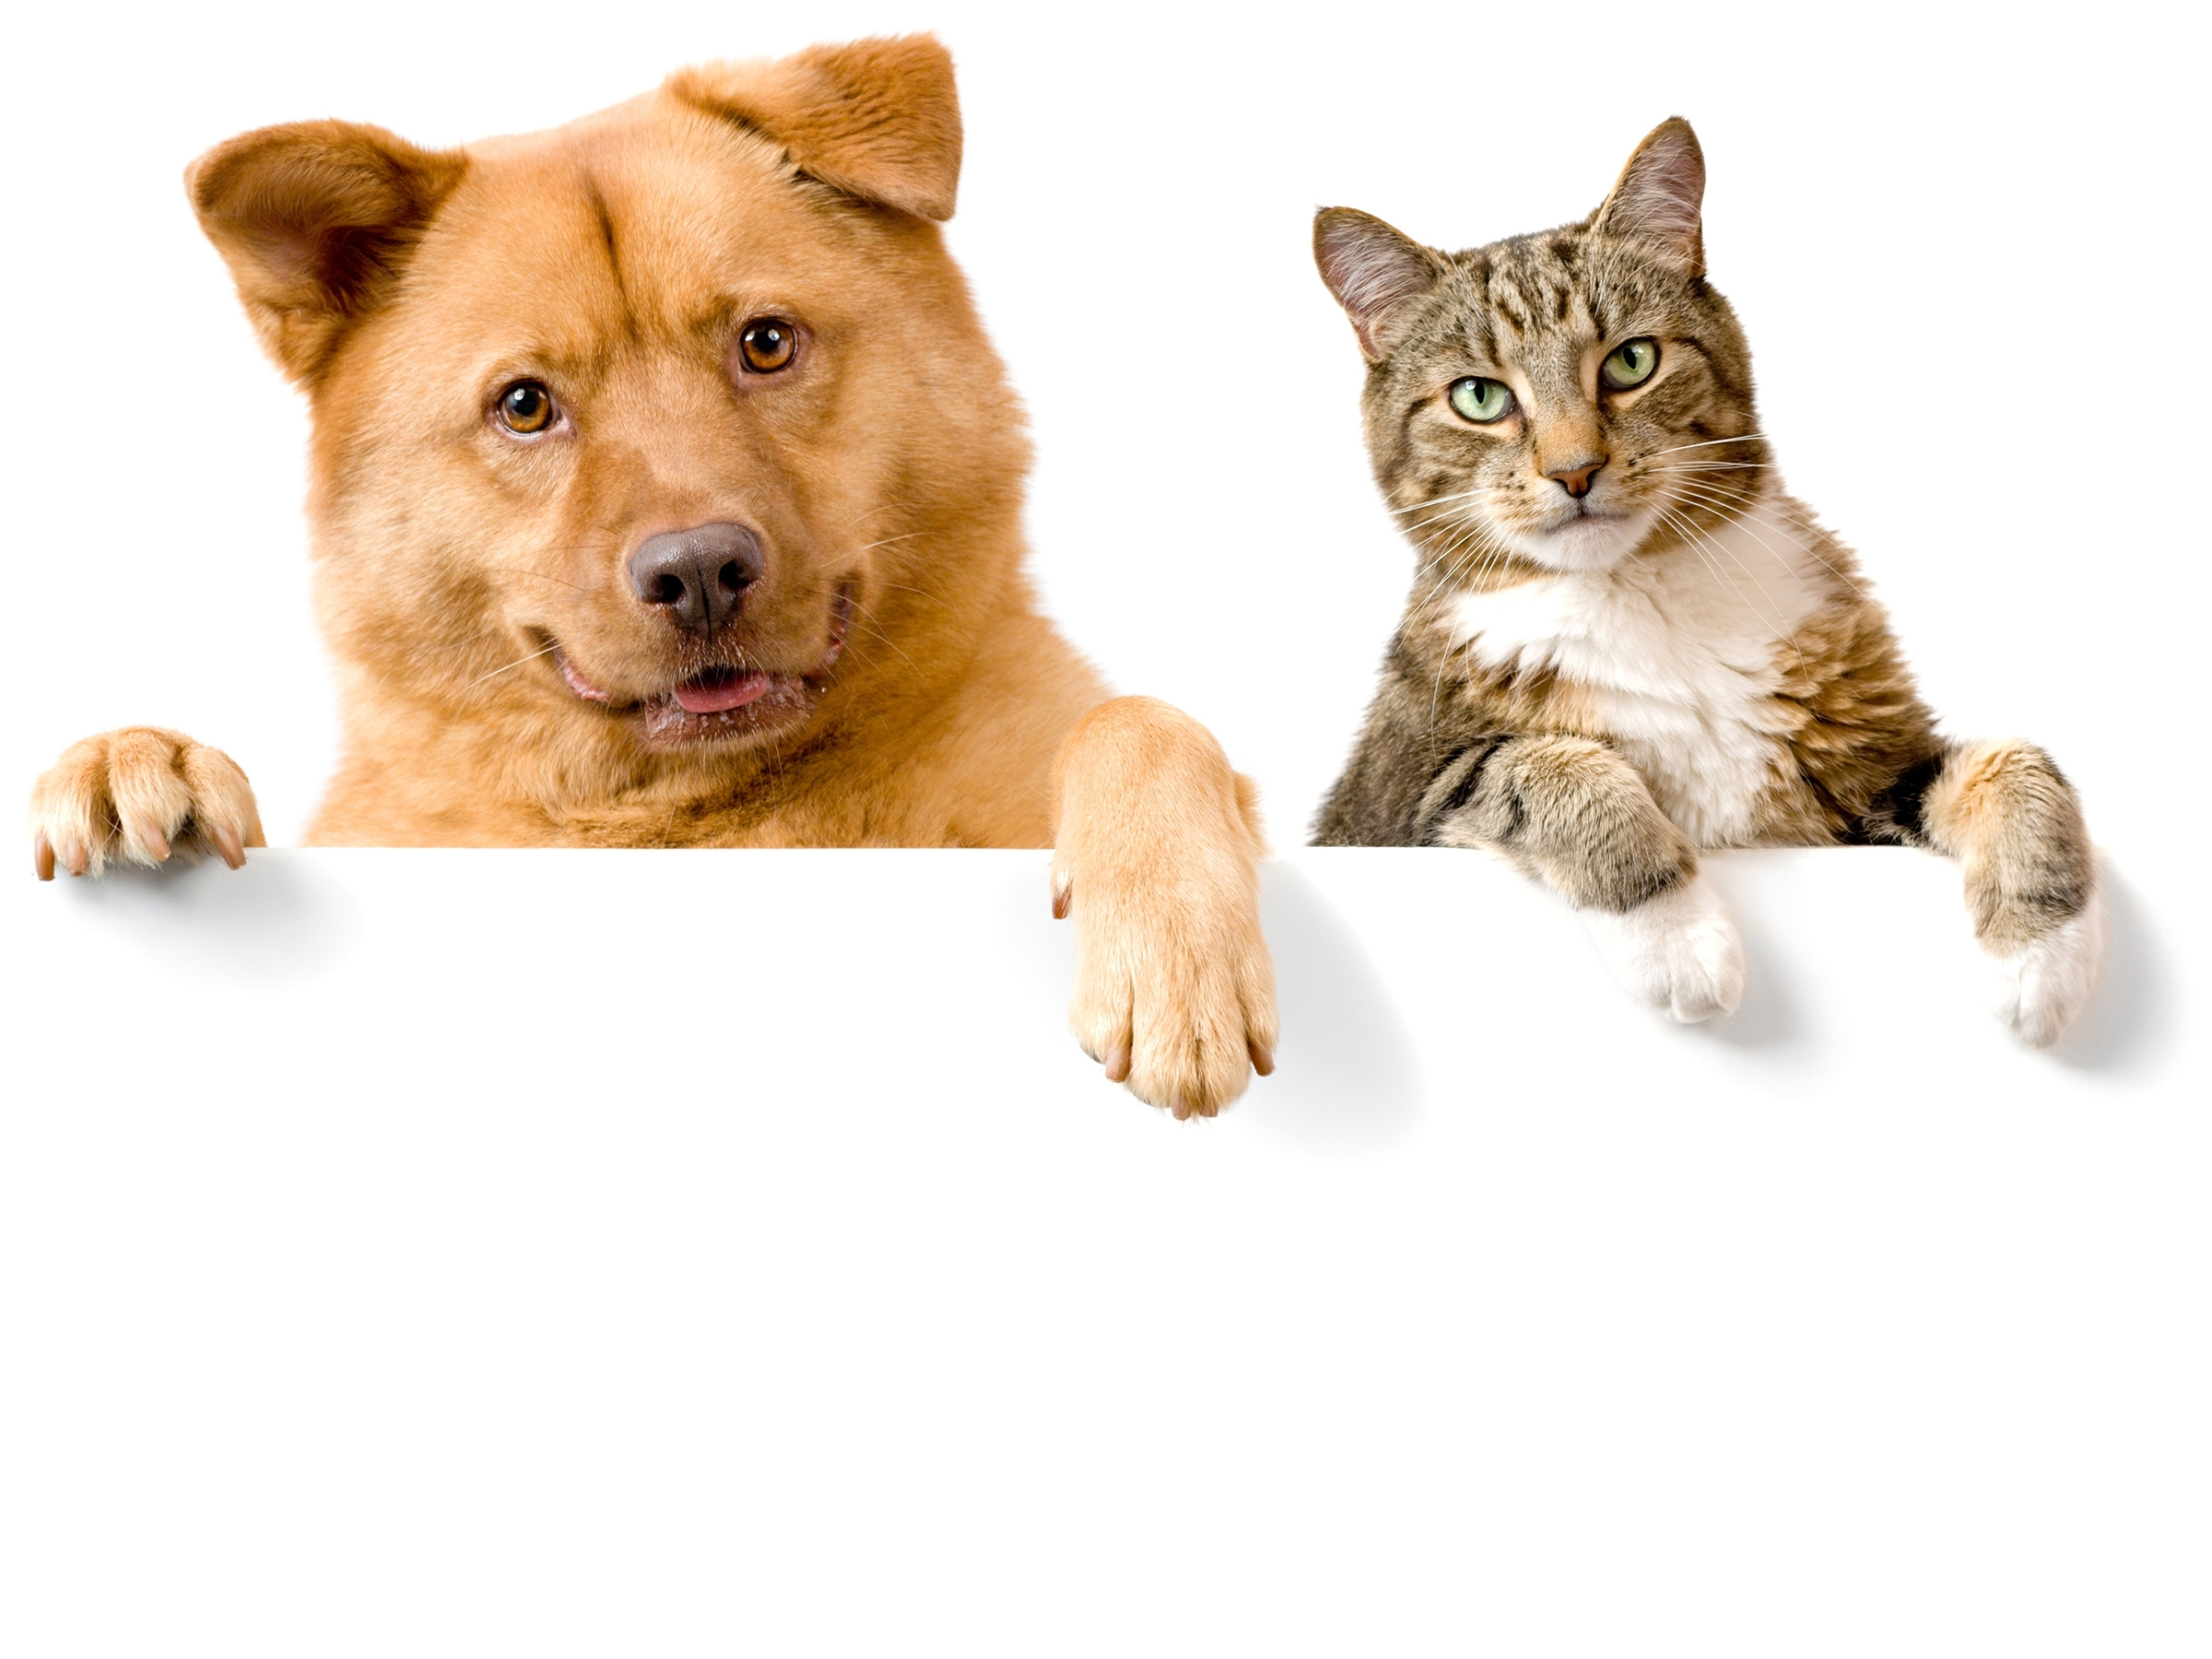 free dog and cat wallpaper background « long wallpapers